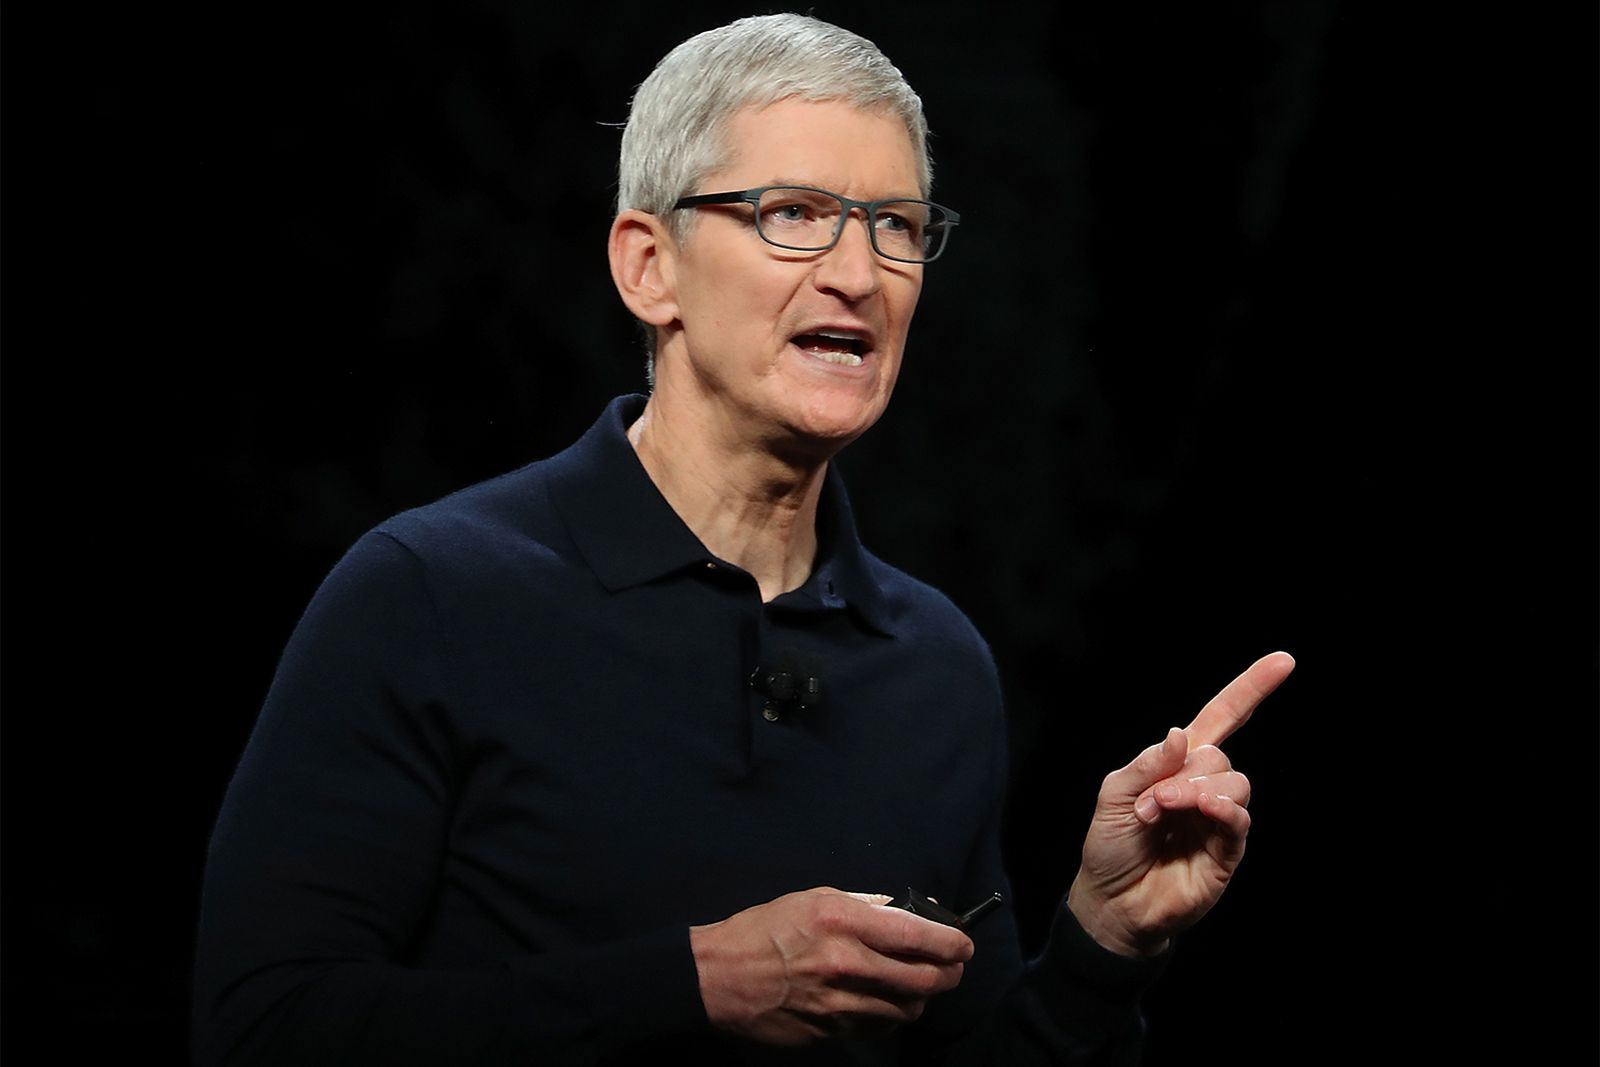 tim cook data privacy law speech apple